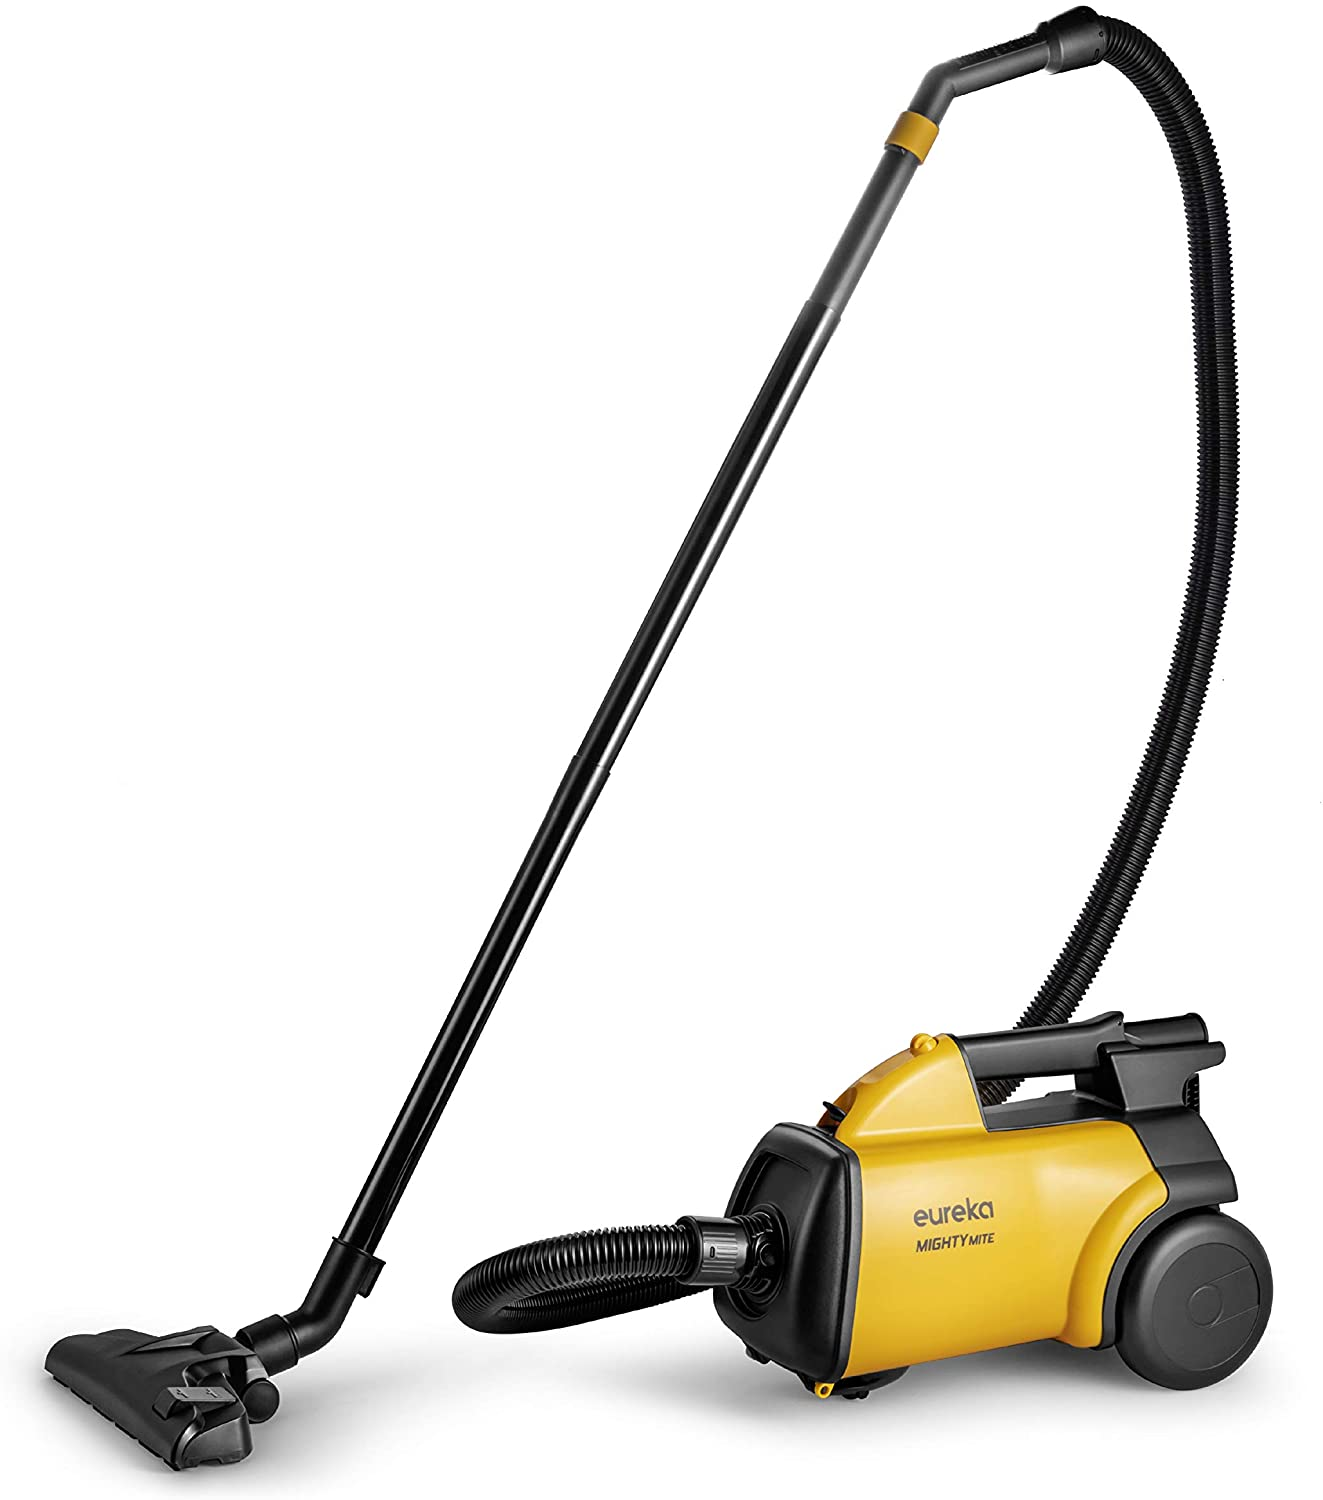 Eureka Mighty Mite Canister Vacuum Cleaner 3670M Review